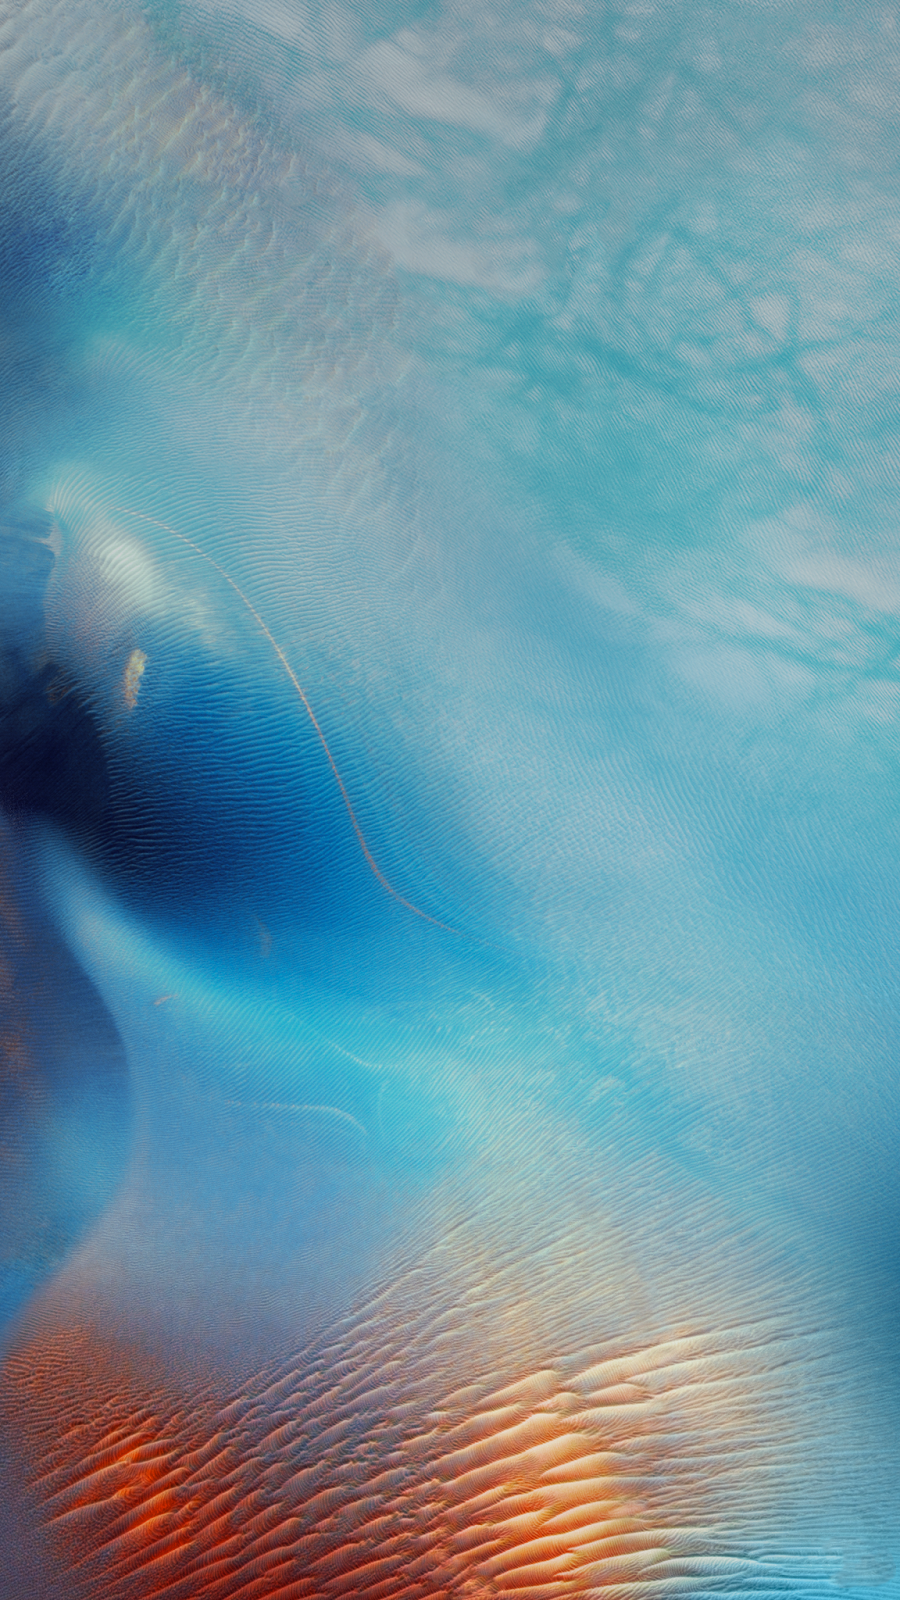 Download] Official iOS 9 Wallpapers - Kickedface